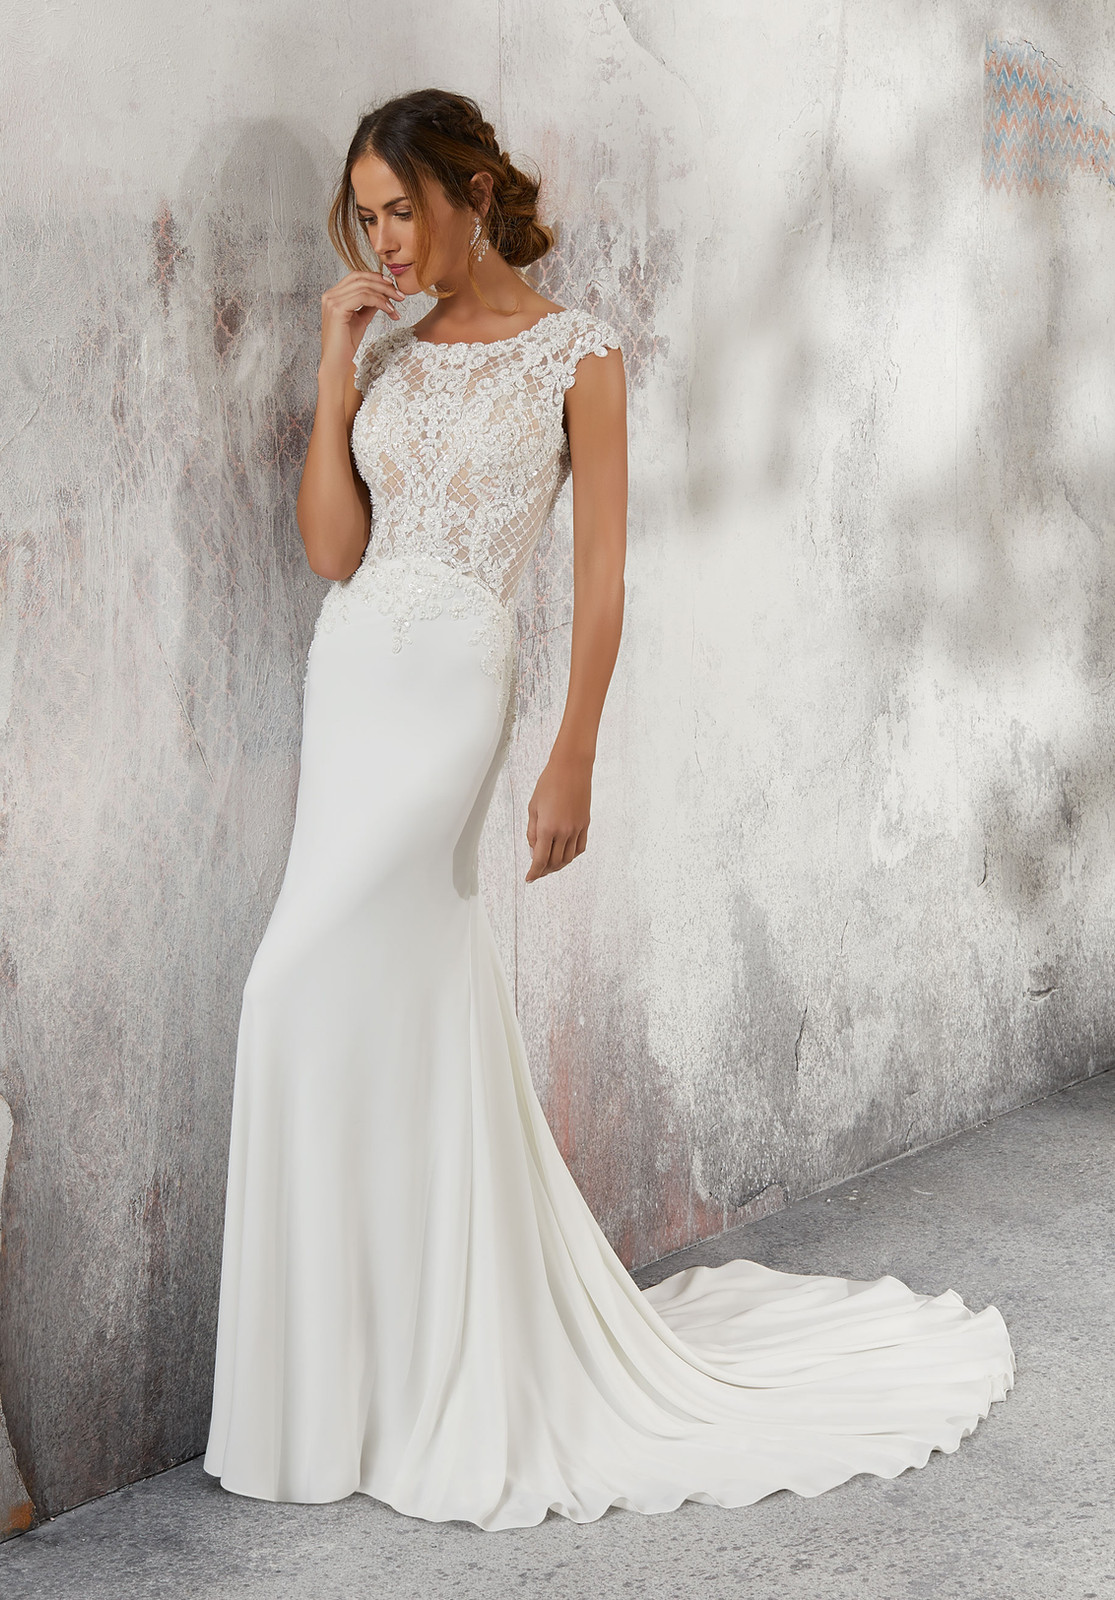 fa3c5501 Lesley Form Fitting Crepe Bridal Gown Featuring an Intricately Beaded  Bodice Accented in Alençon Lace Appliqués and Cross-Stitch Embroidery.